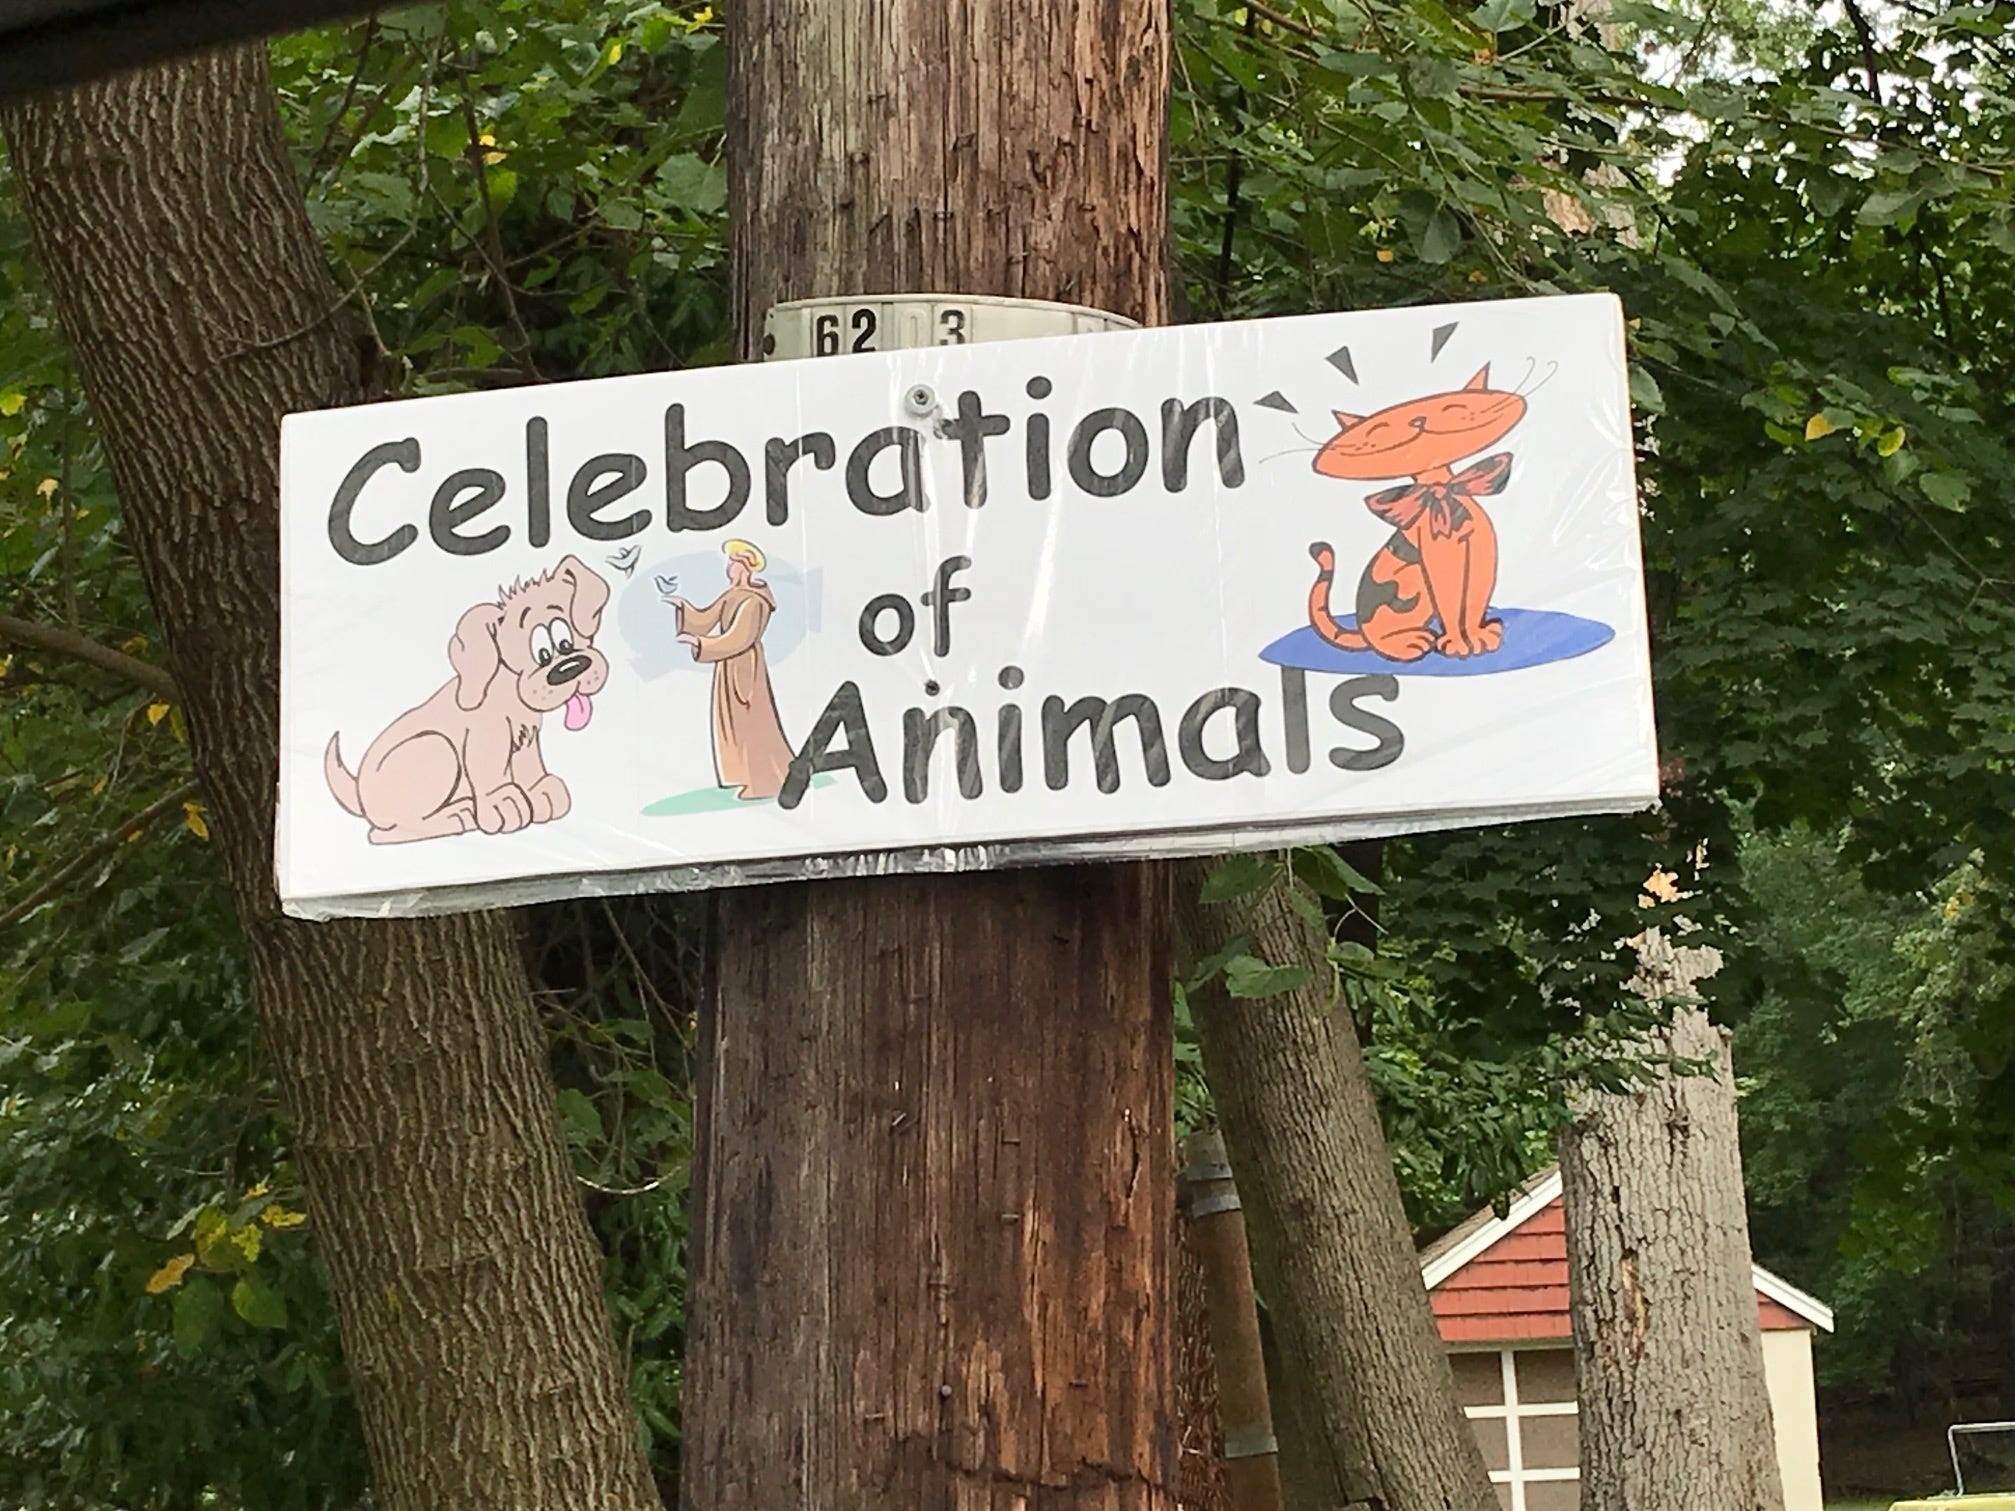 A sign welcoming participants to Sunday's Animal Initiative Committee's Celebration of Animals at Leland Avenue Park in Plainfield